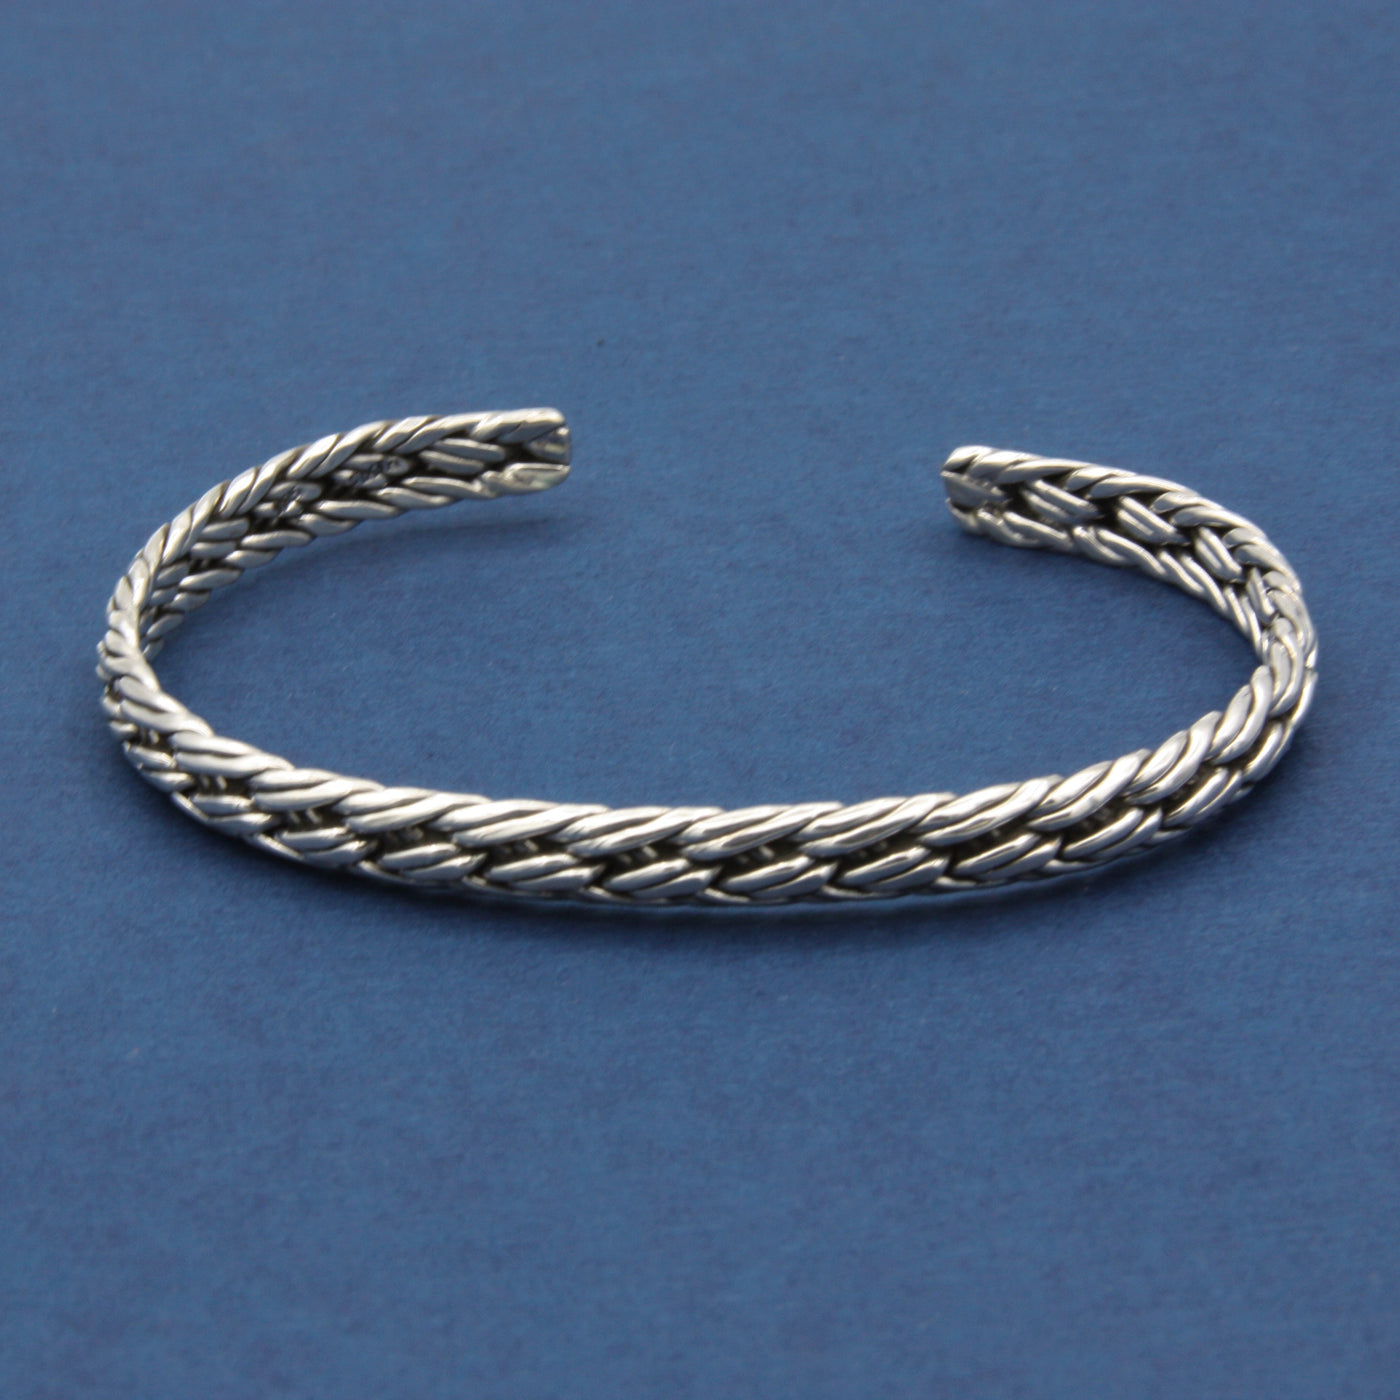 Sterling Silver Thin Braided Cuff Bracelet